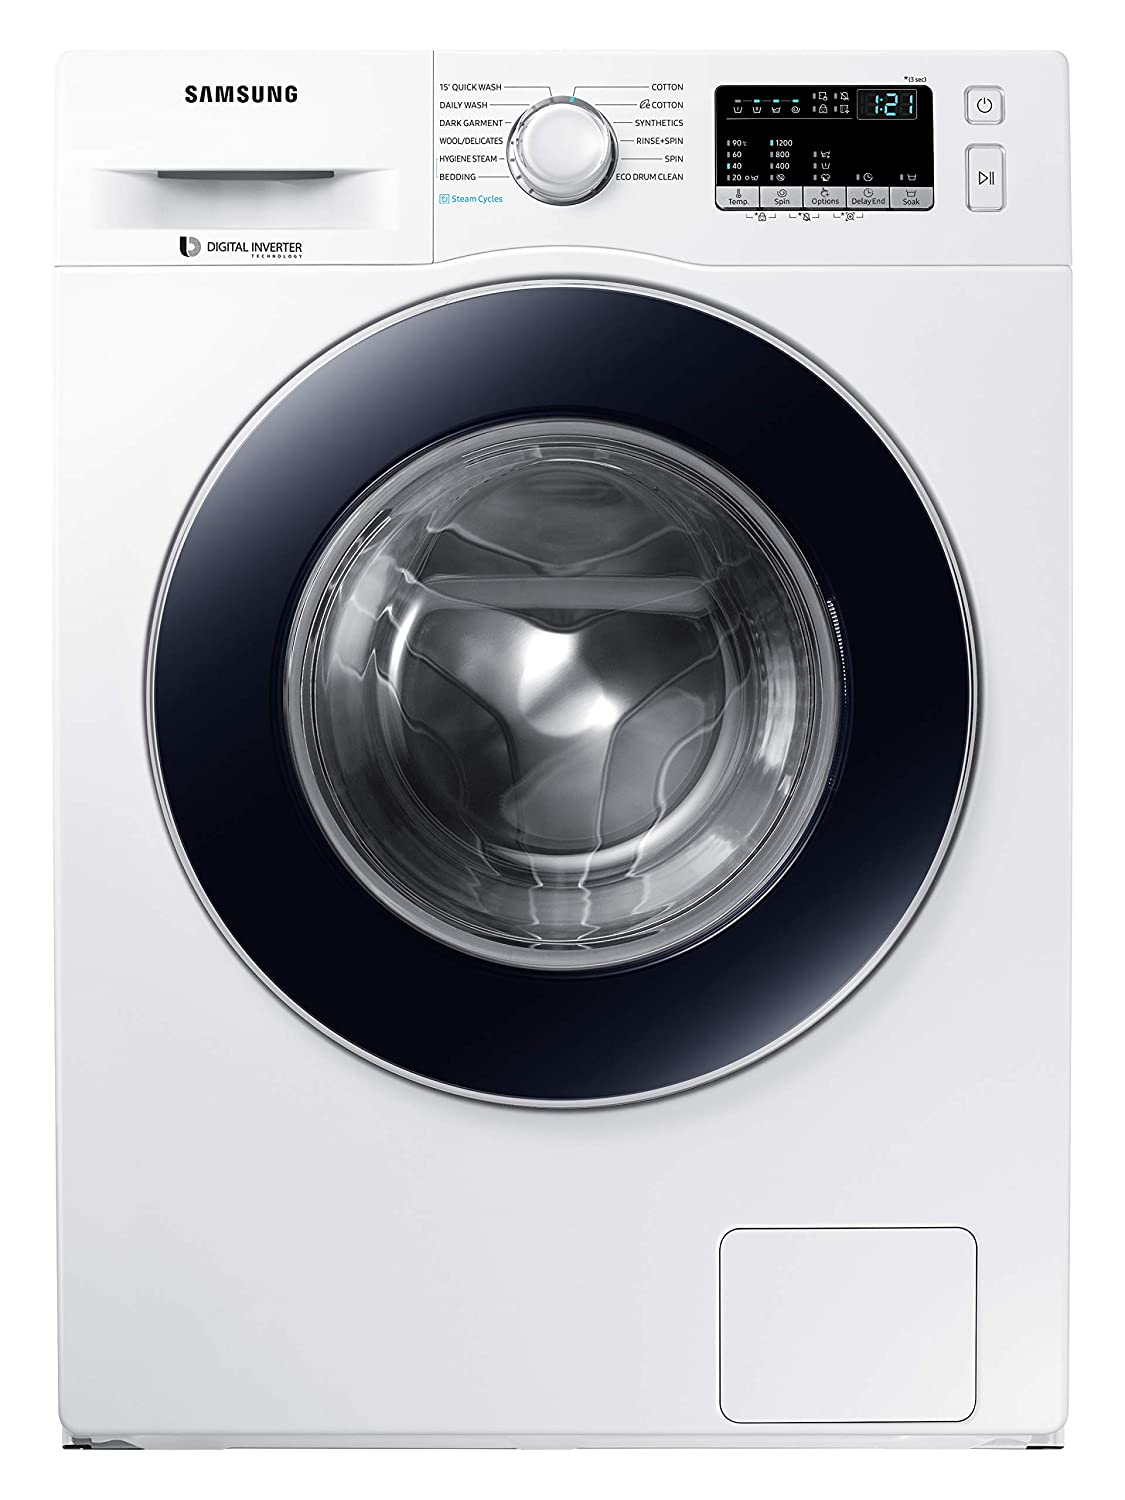 Samsung 7 Kg 5 Star Inverter Fully Automatic Front Loading Washing Machine